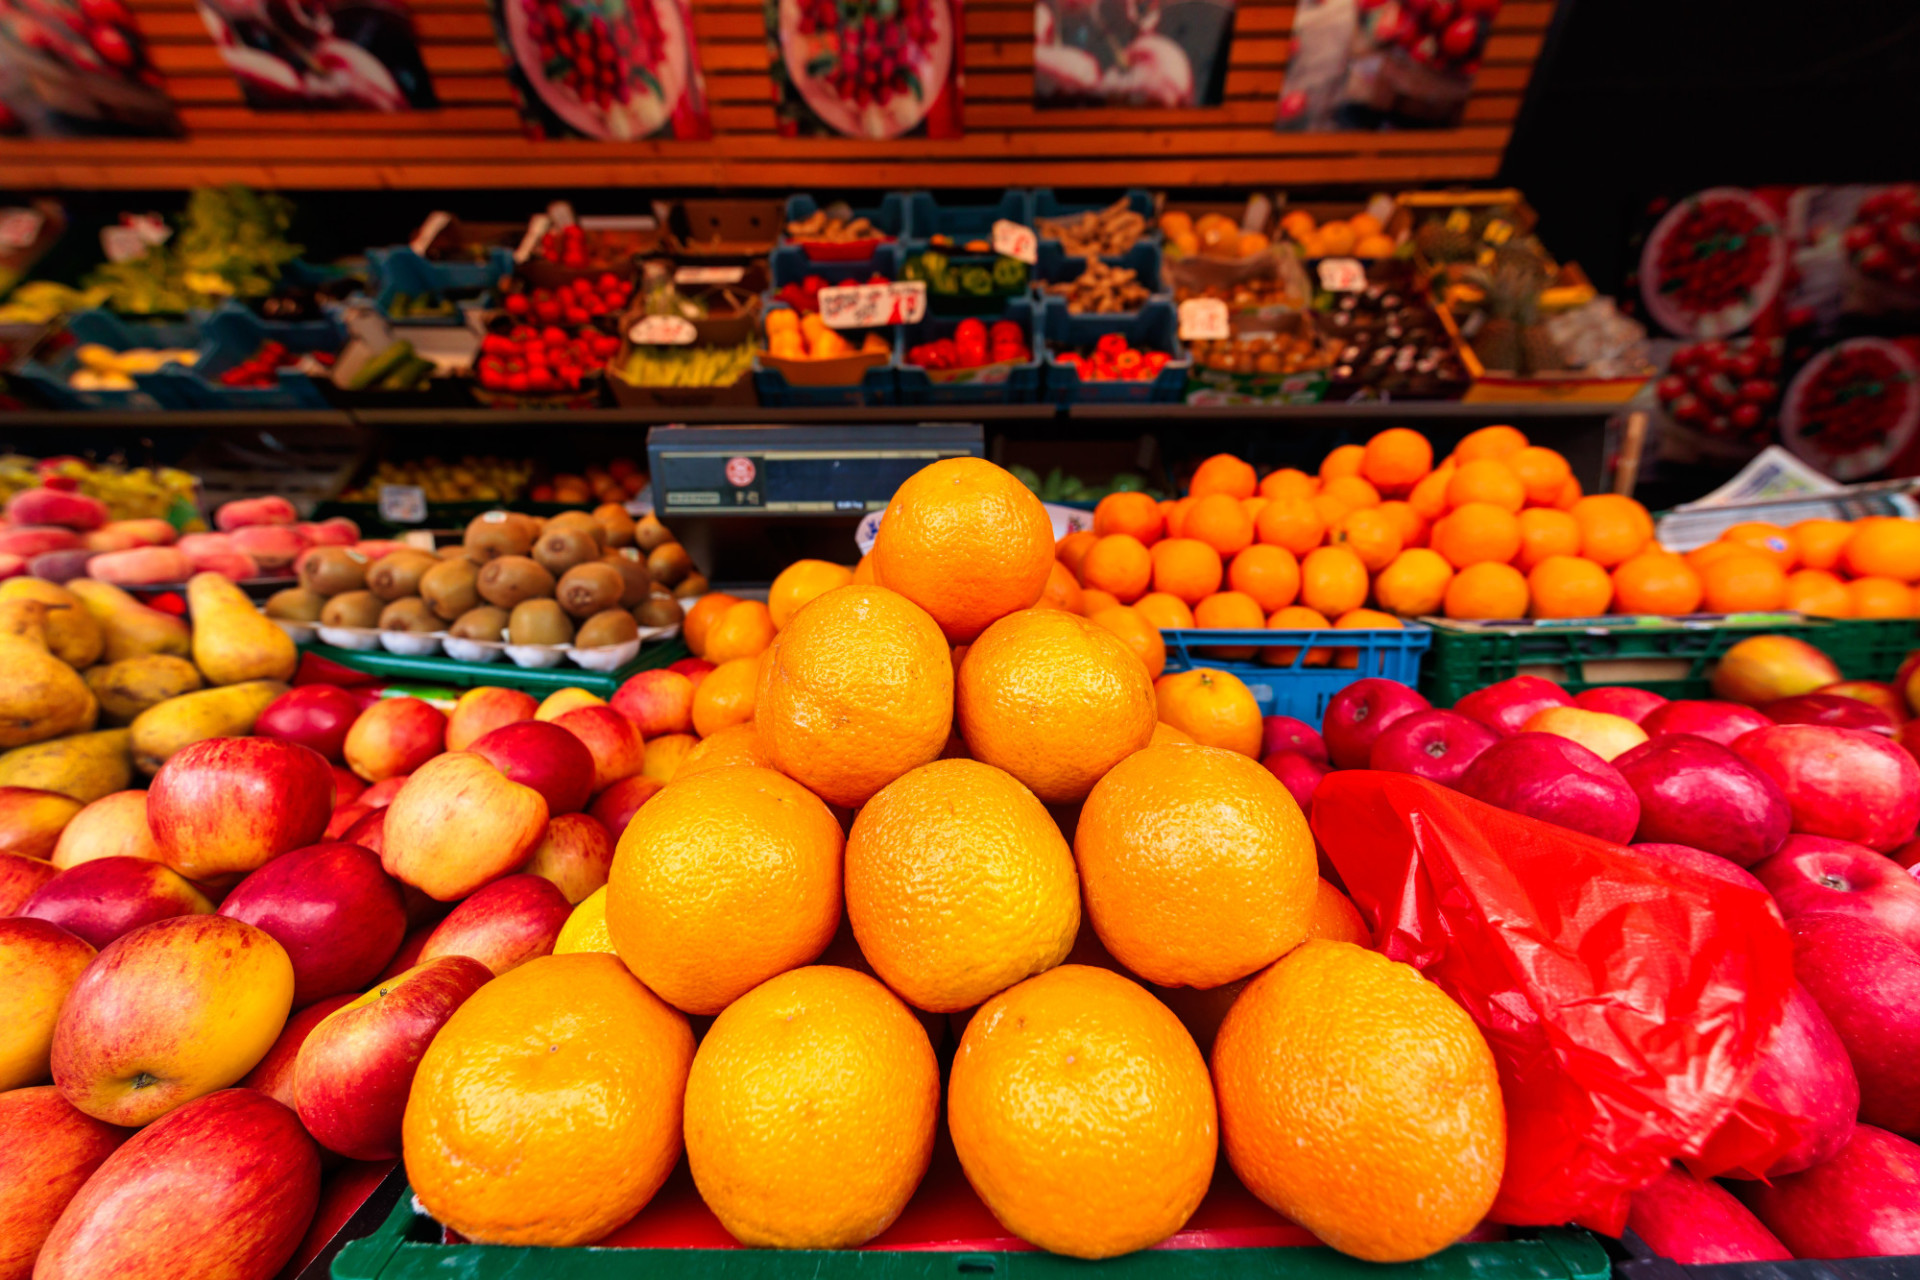 Fruits are sold at the market